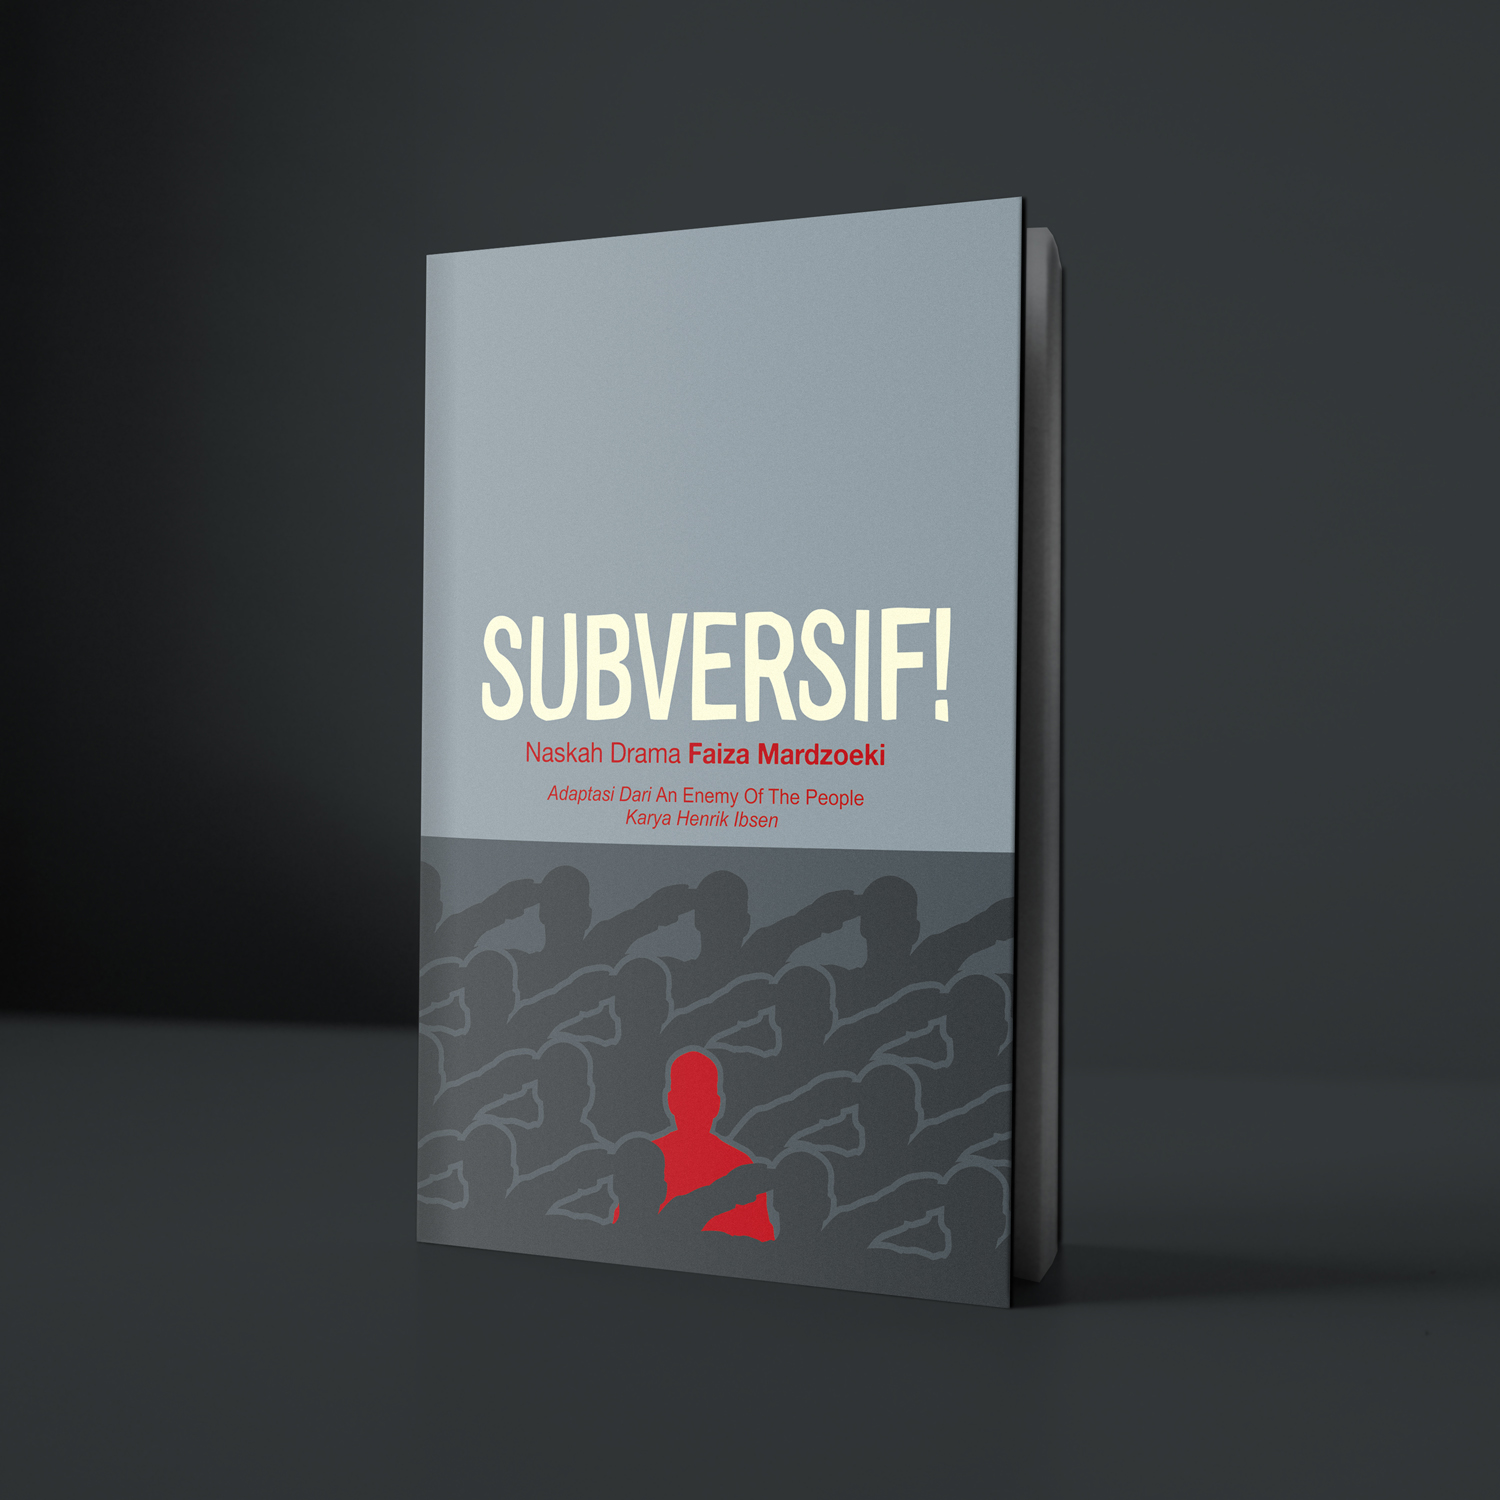 SUBVERSIF! (Published by Djaman Baroe, 2016